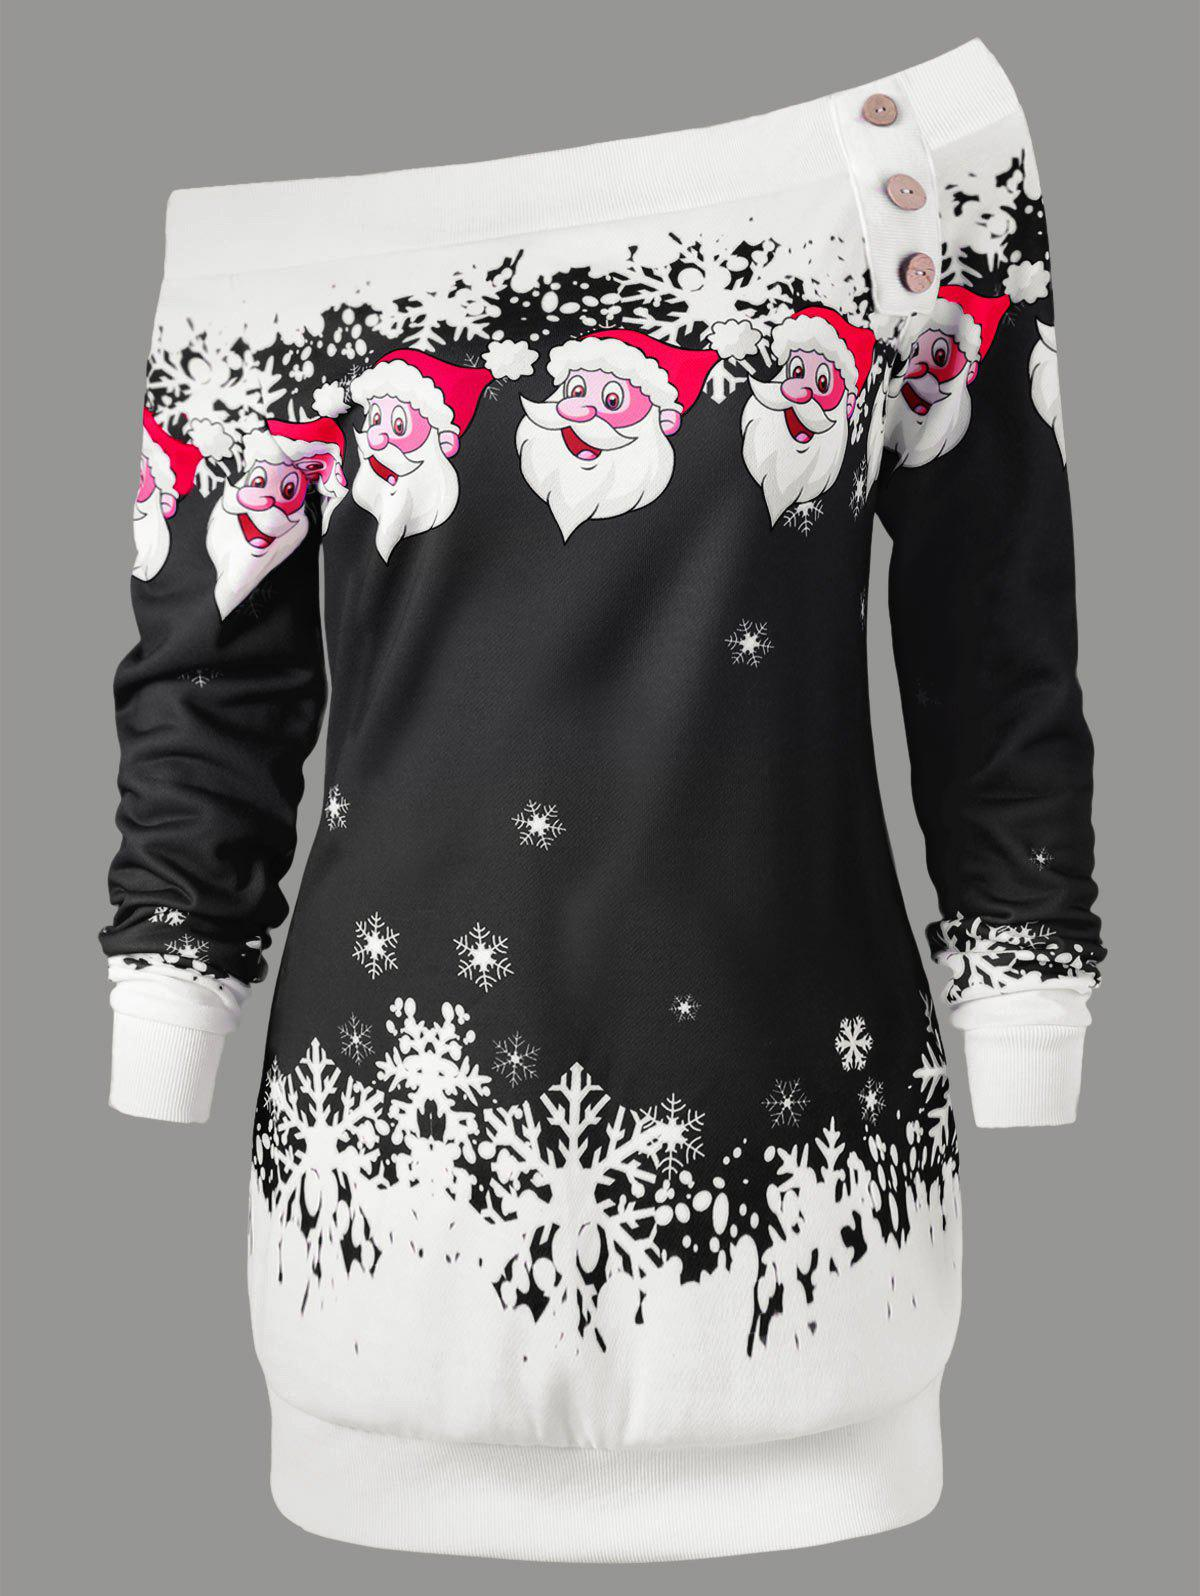 Pullover Santa Claus Snowflake Skew Neck Christmas SweatshirtWOMEN<br><br>Size: L; Color: BLACK; Material: Polyester,Spandex; Shirt Length: Long; Sleeve Length: Full; Style: Casual; Pattern Style: Character; Embellishment: Button; Season: Fall,Spring,Winter; Weight: 0.3000kg; Package Contents: 1 x Sweatshirt;